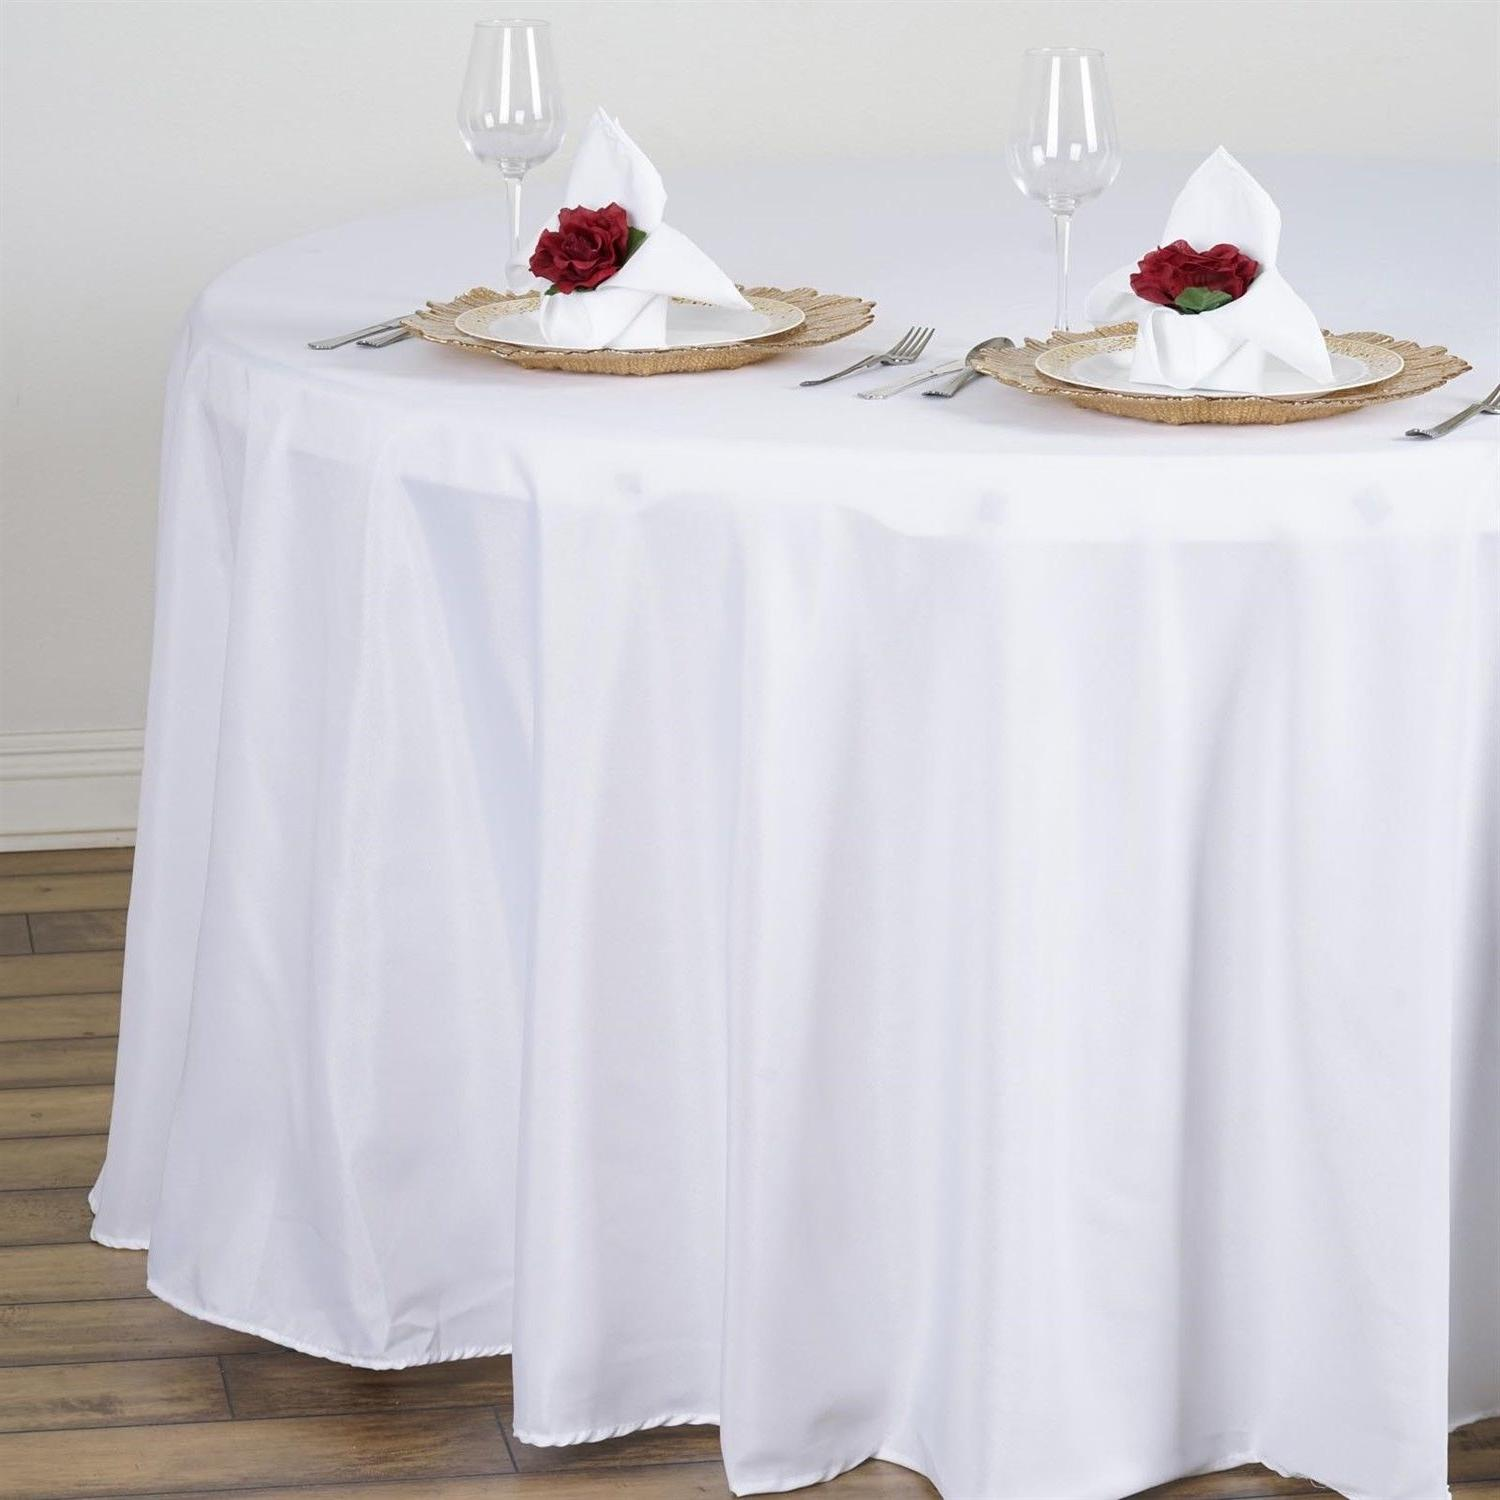 1 to White Tablecloth 5' Feet Table